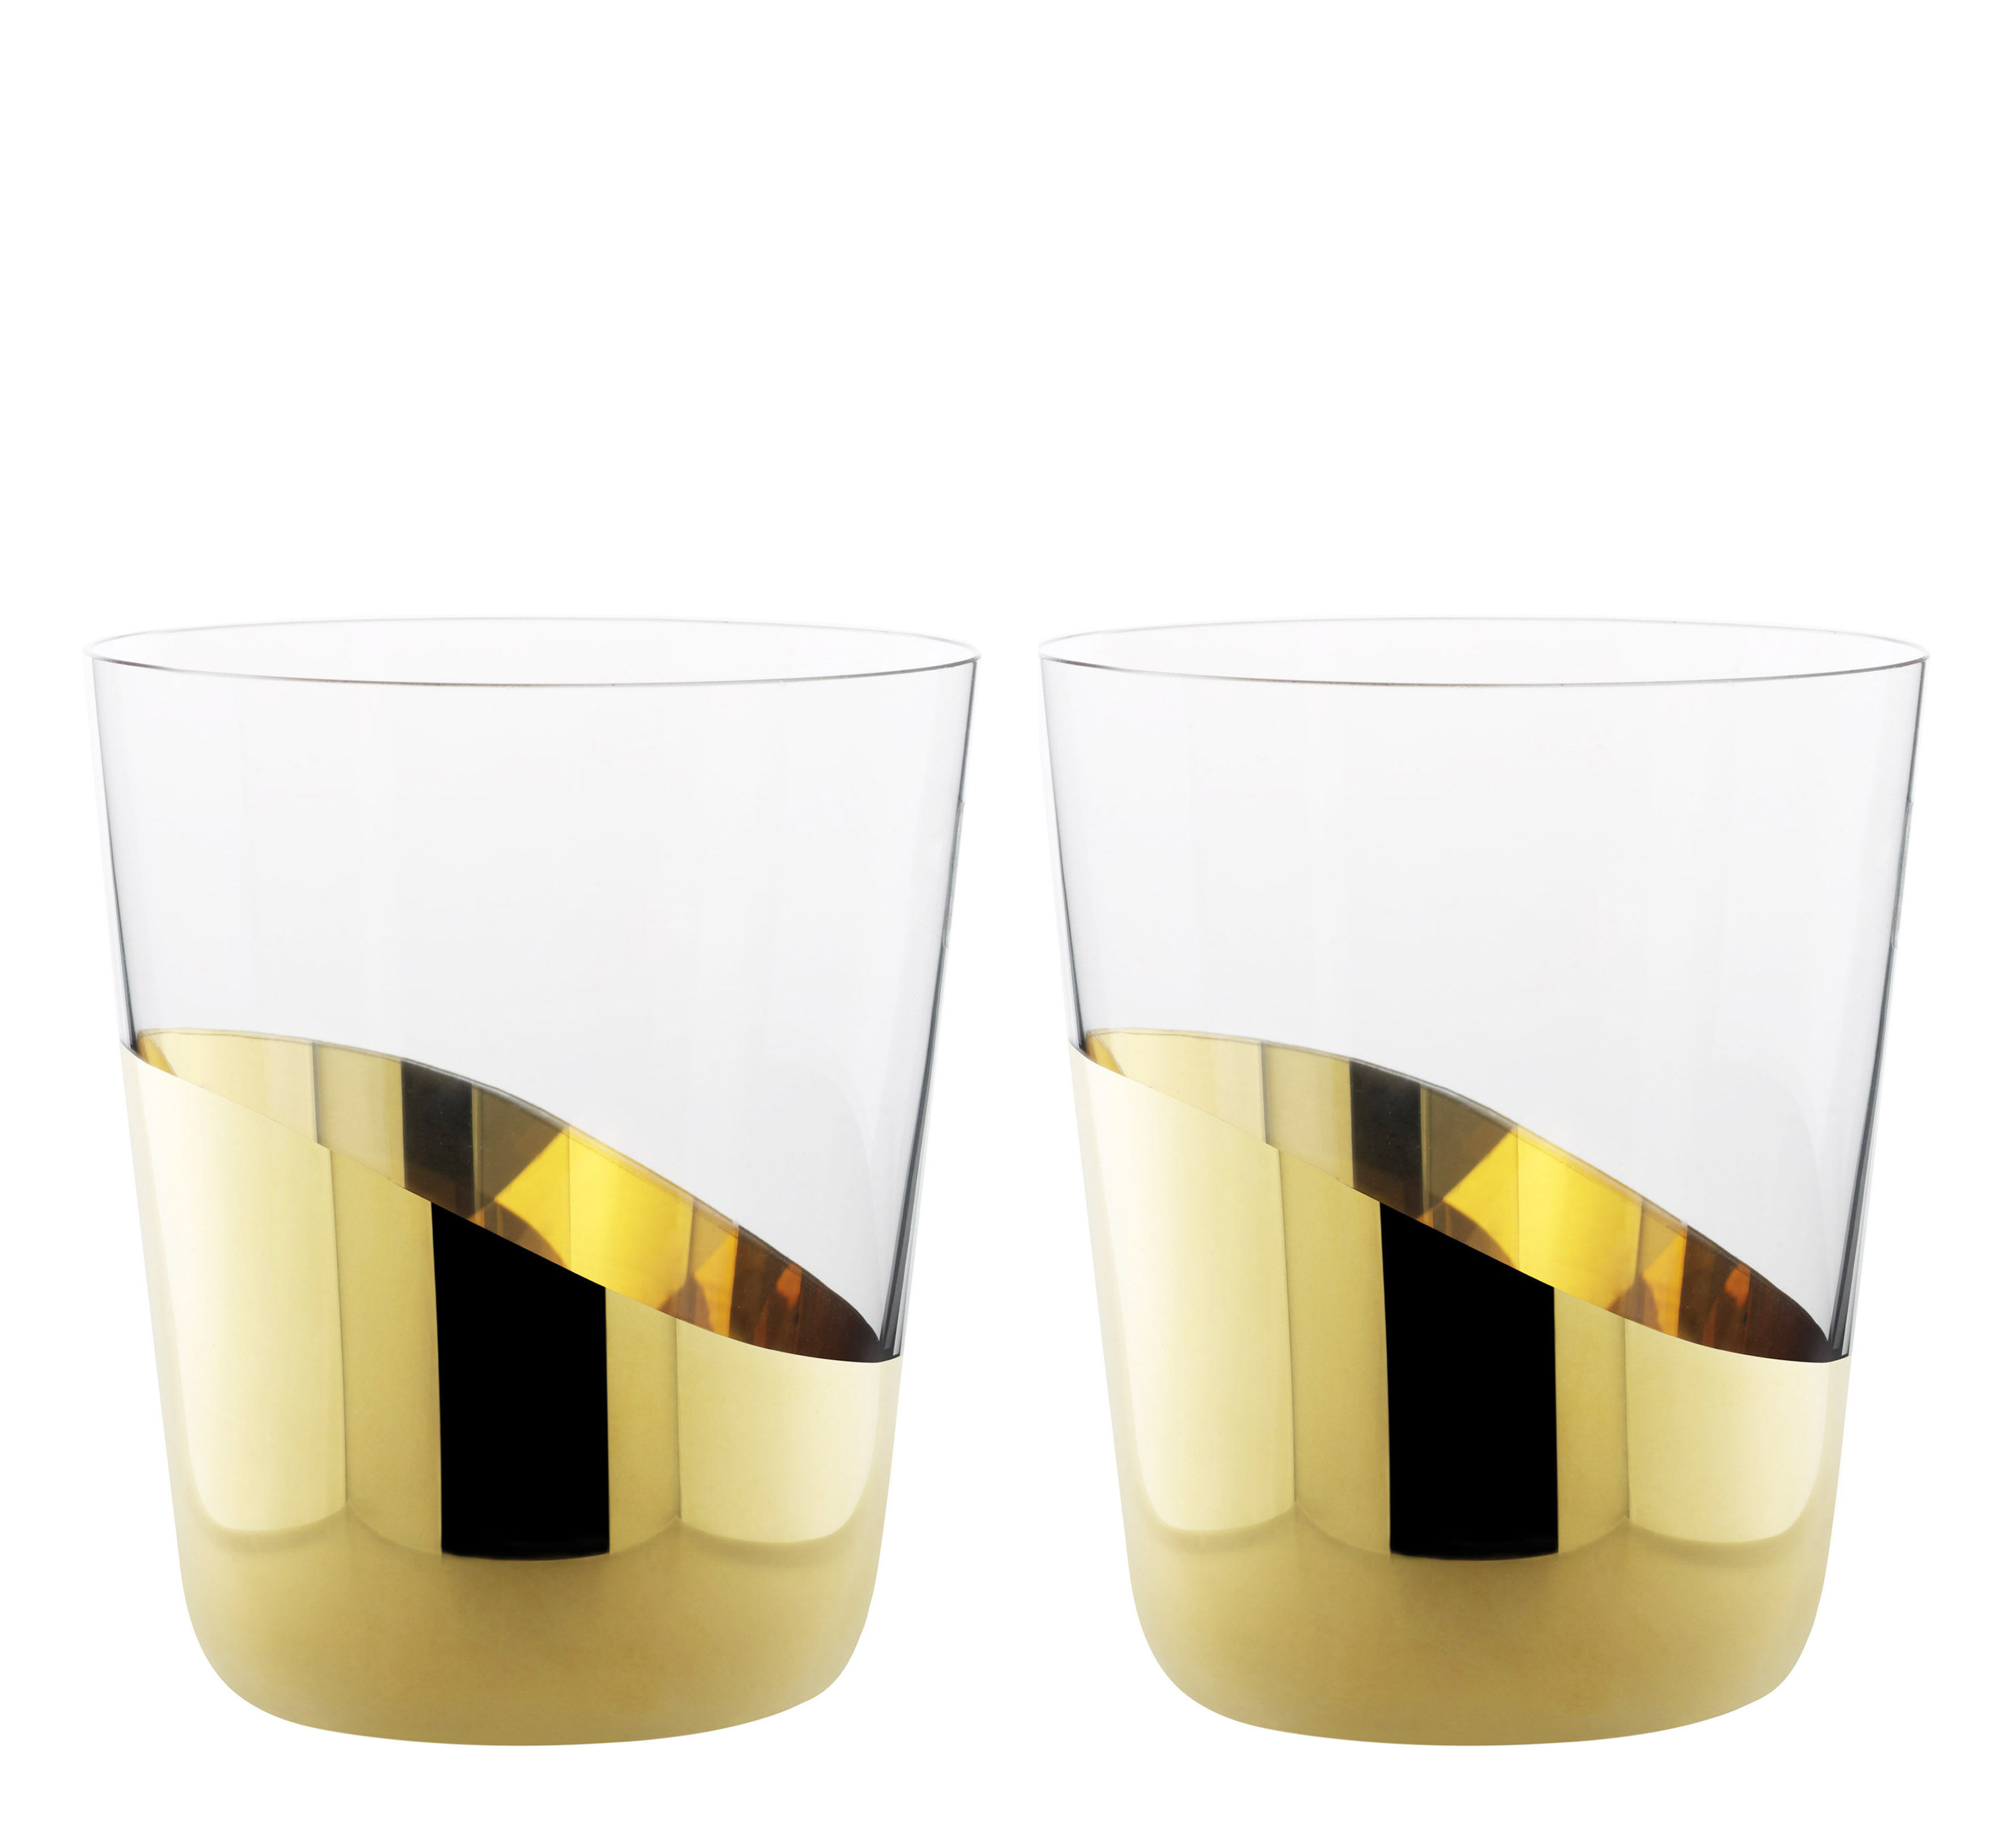 Tableware - Wine Glasses & Glassware - Midas Water glass - 2 water glasses gold lower by Skitsch - Clear & gold - Gold, Mouth blown glass